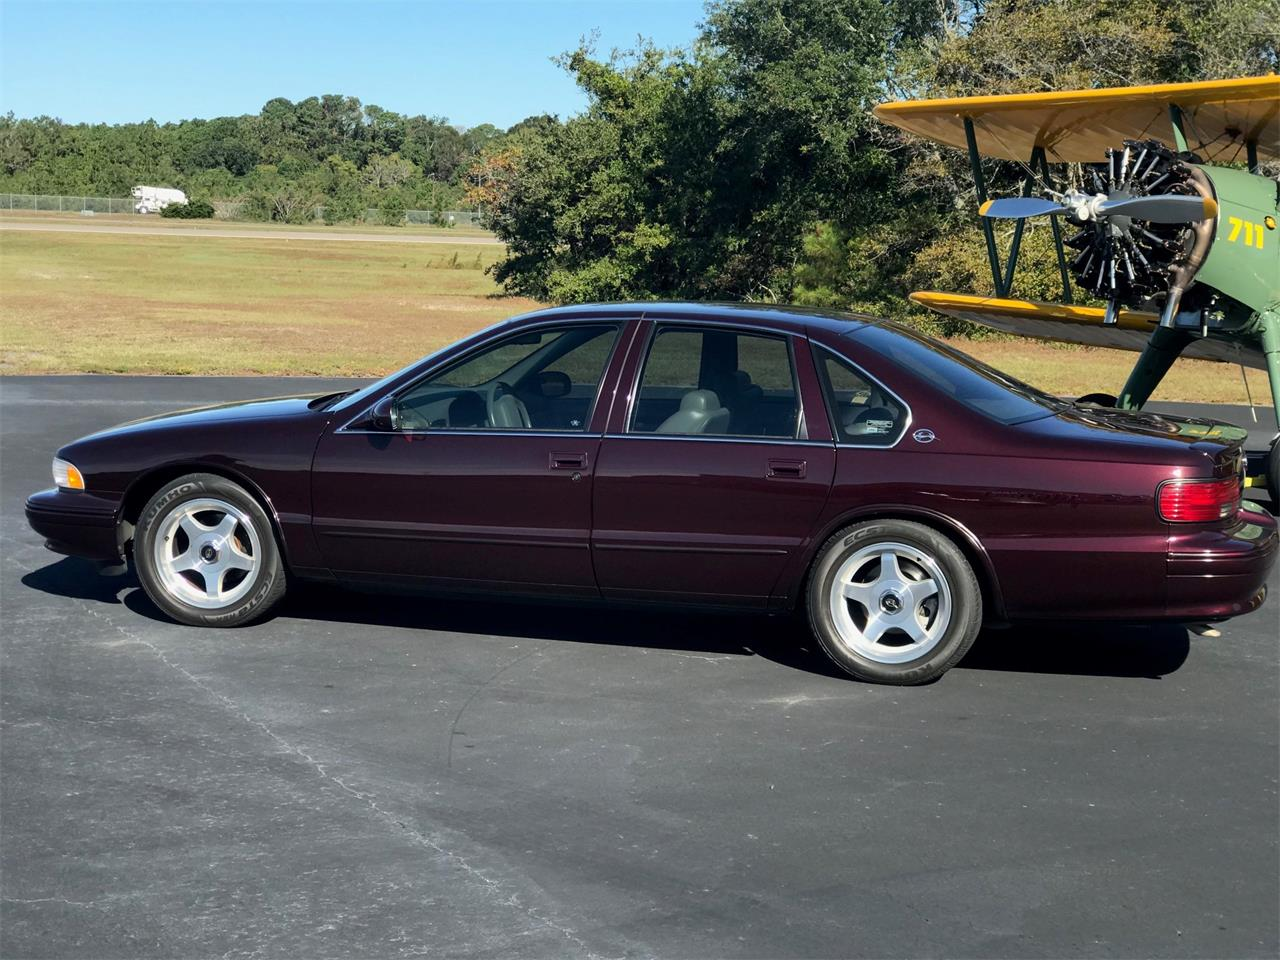 1996 Chevrolet Impala SS (CC-1274039) for sale in Oak Island, North Carolina